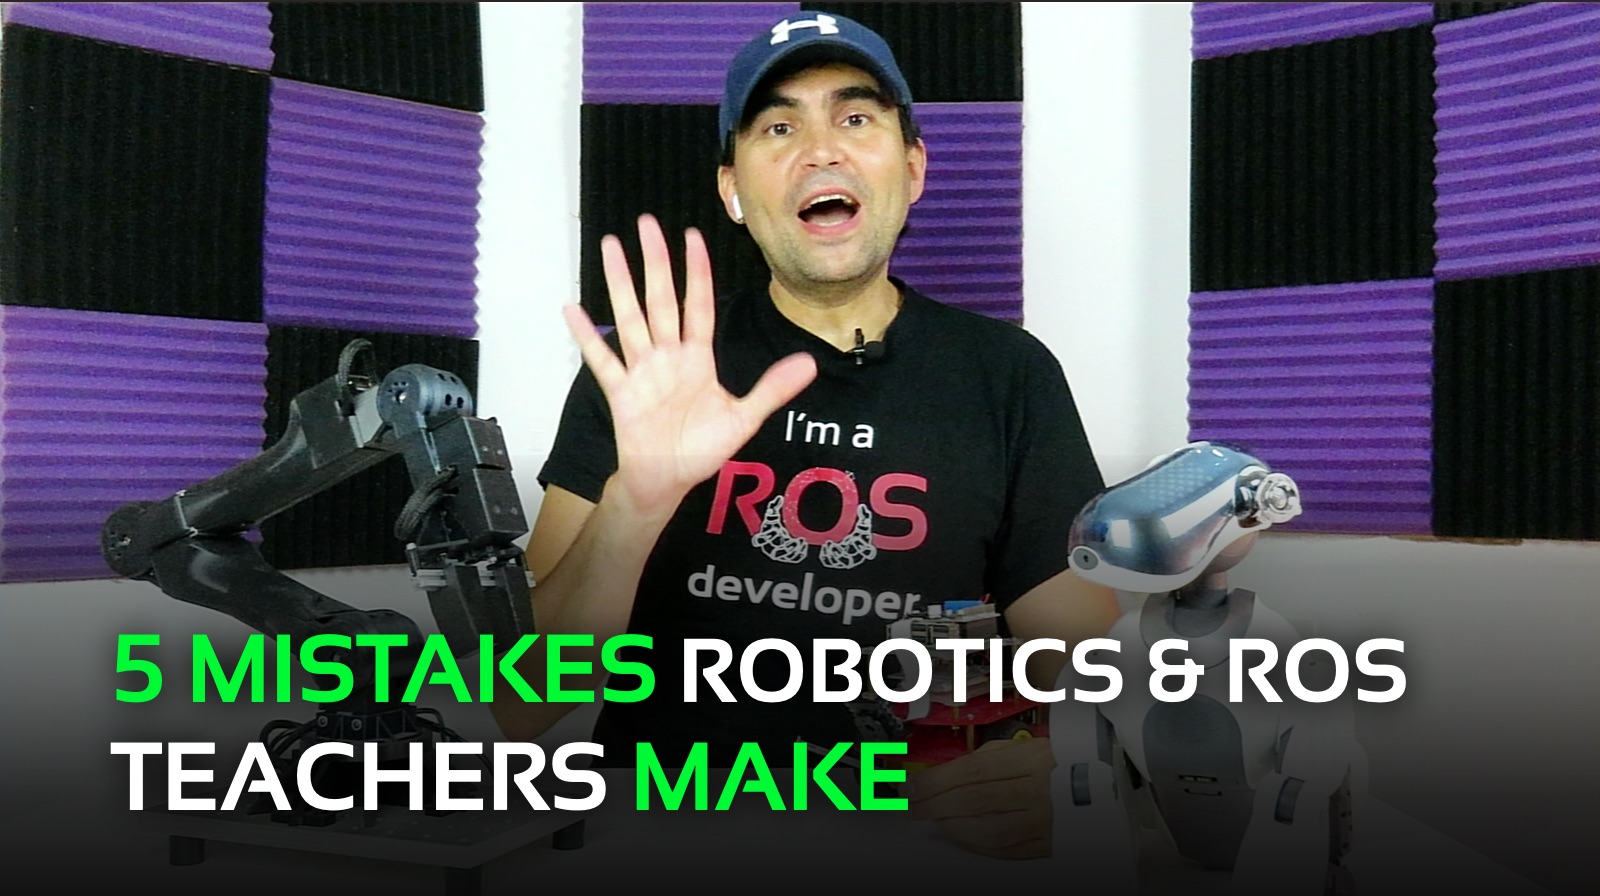 5 Mistakes Robotics & ROS Teachers Make